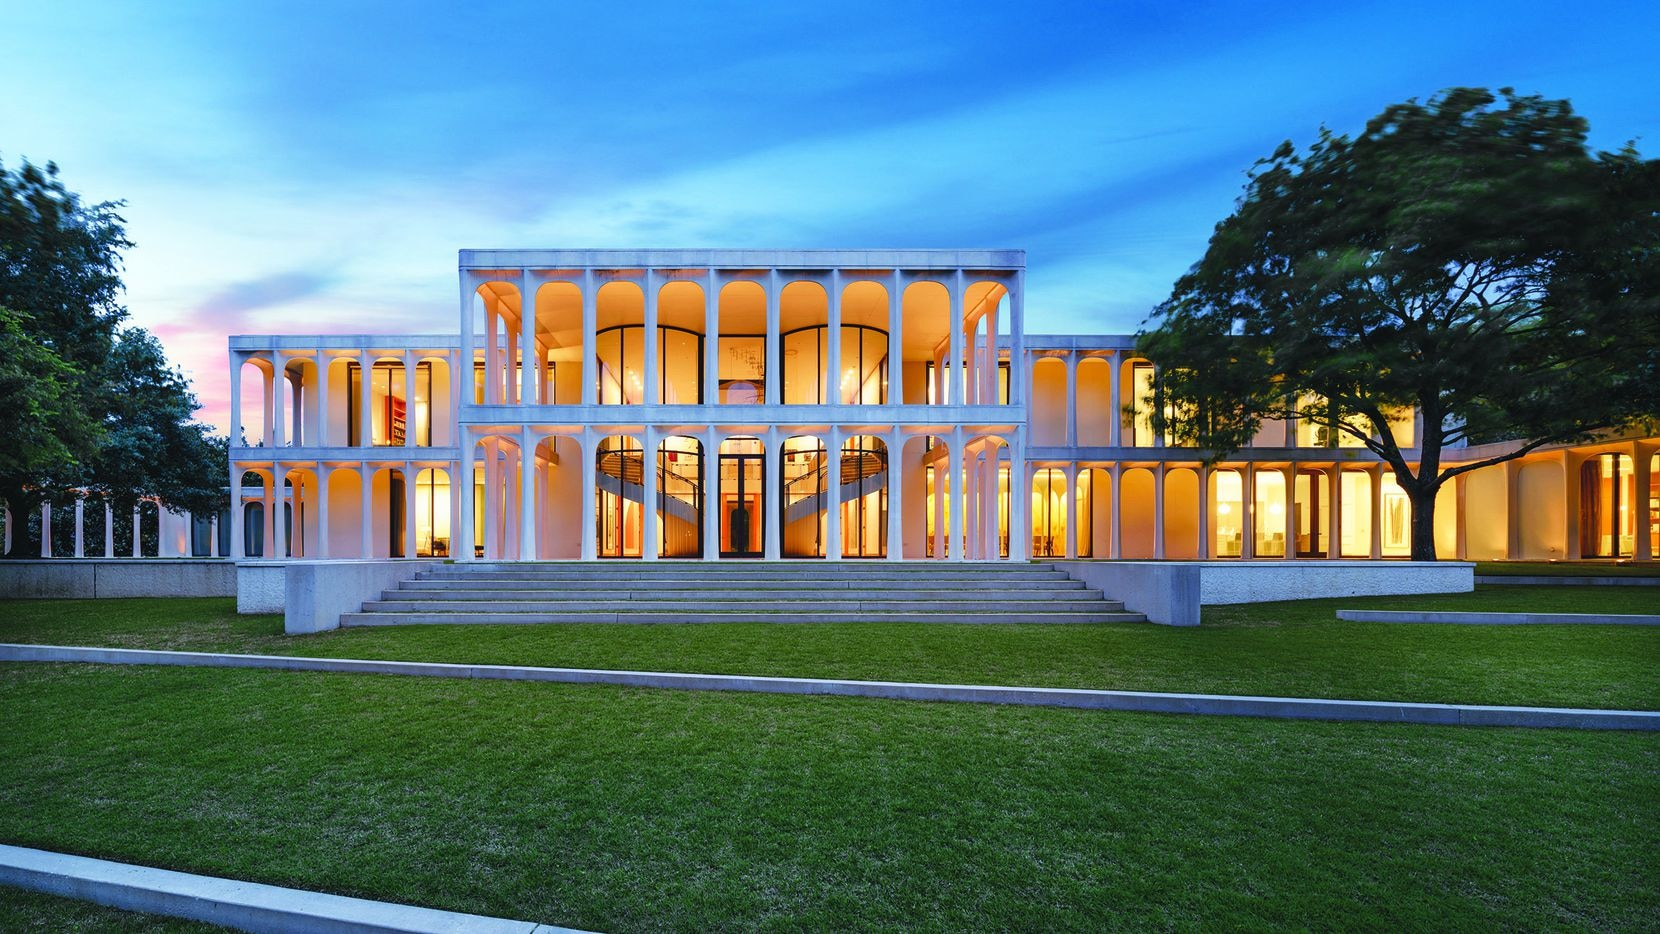 The estate at 10210 Strait Lane in Dallas, designed by Philip Johnson, was listed for $19.5 million and sold by Briggs Freeman Sotheby's International Realty in a busy 2020.